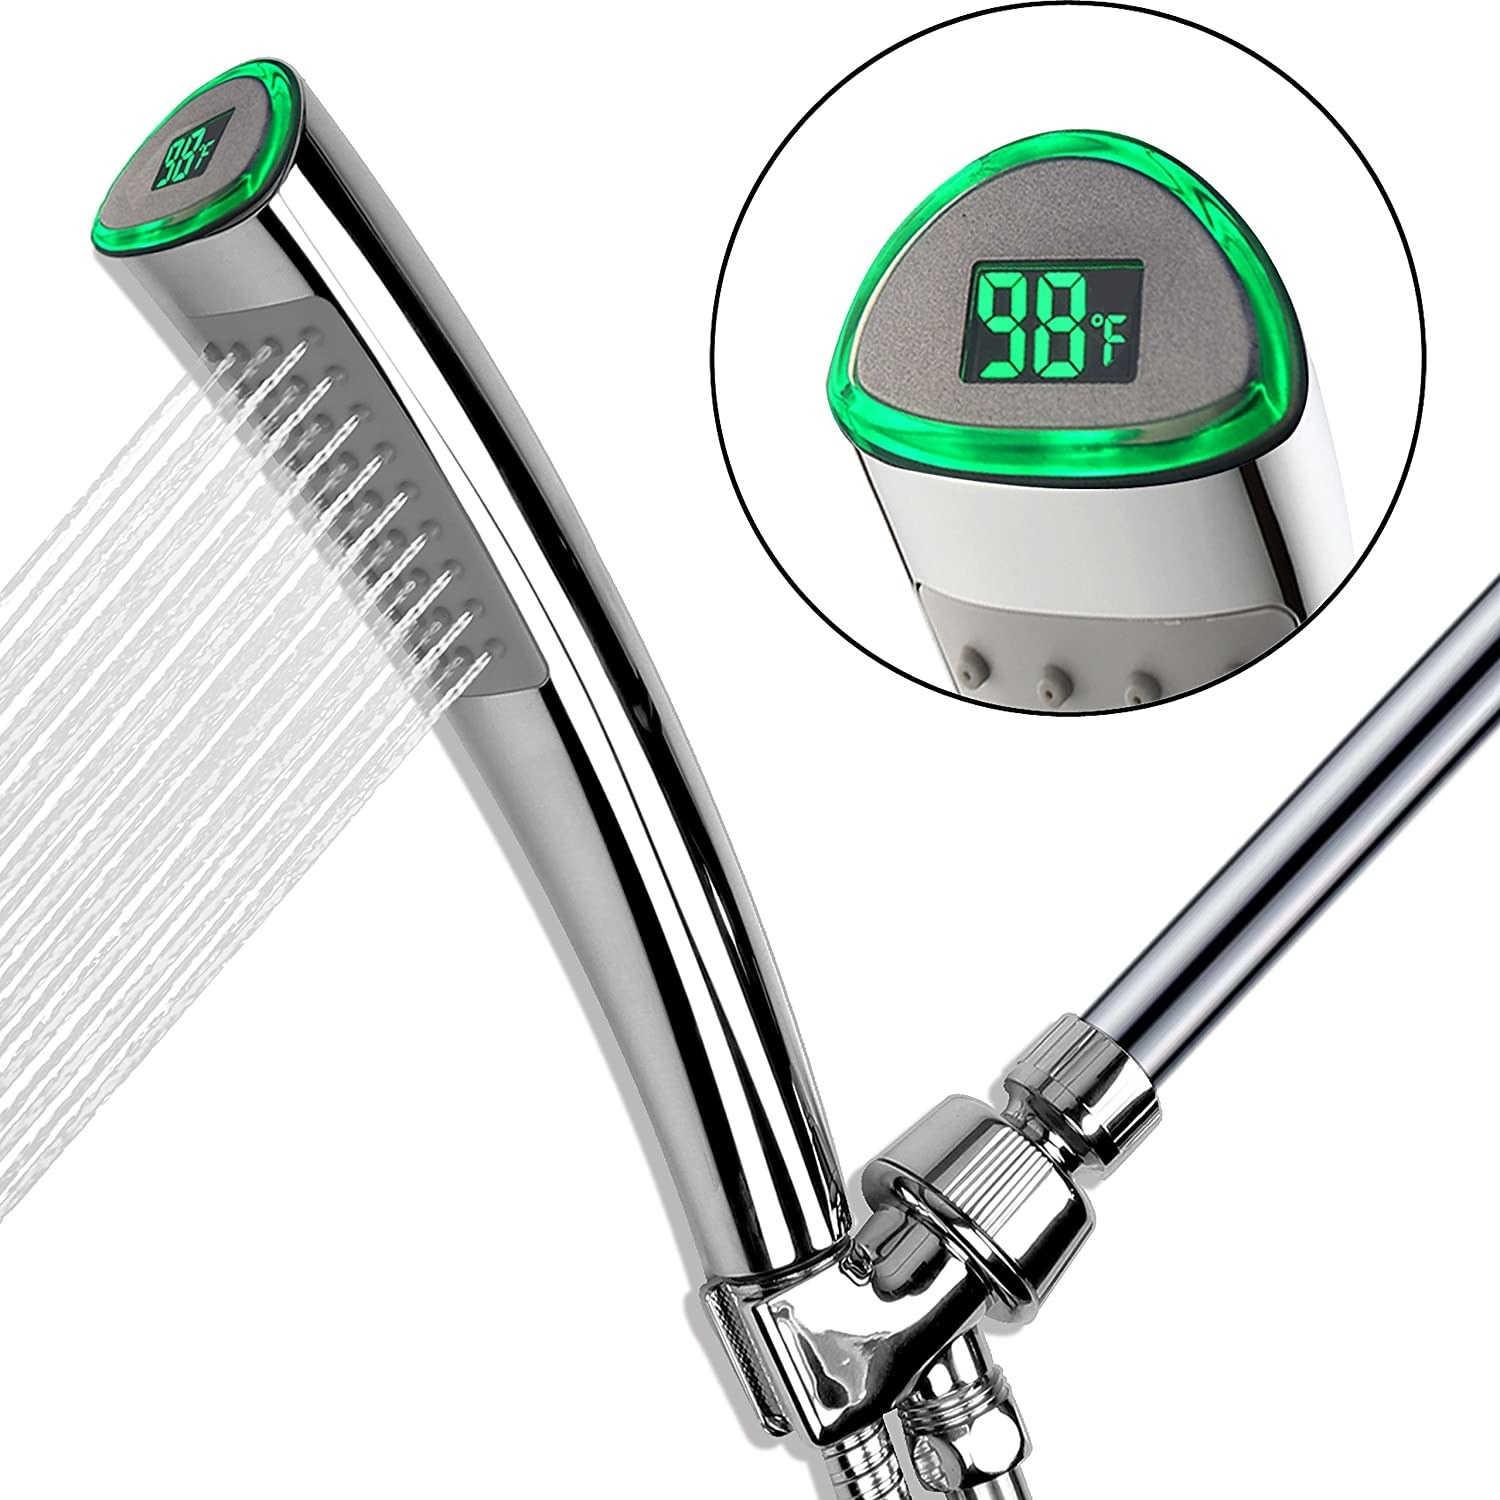 A chrome shower head with an LED display showing the temperature of the water